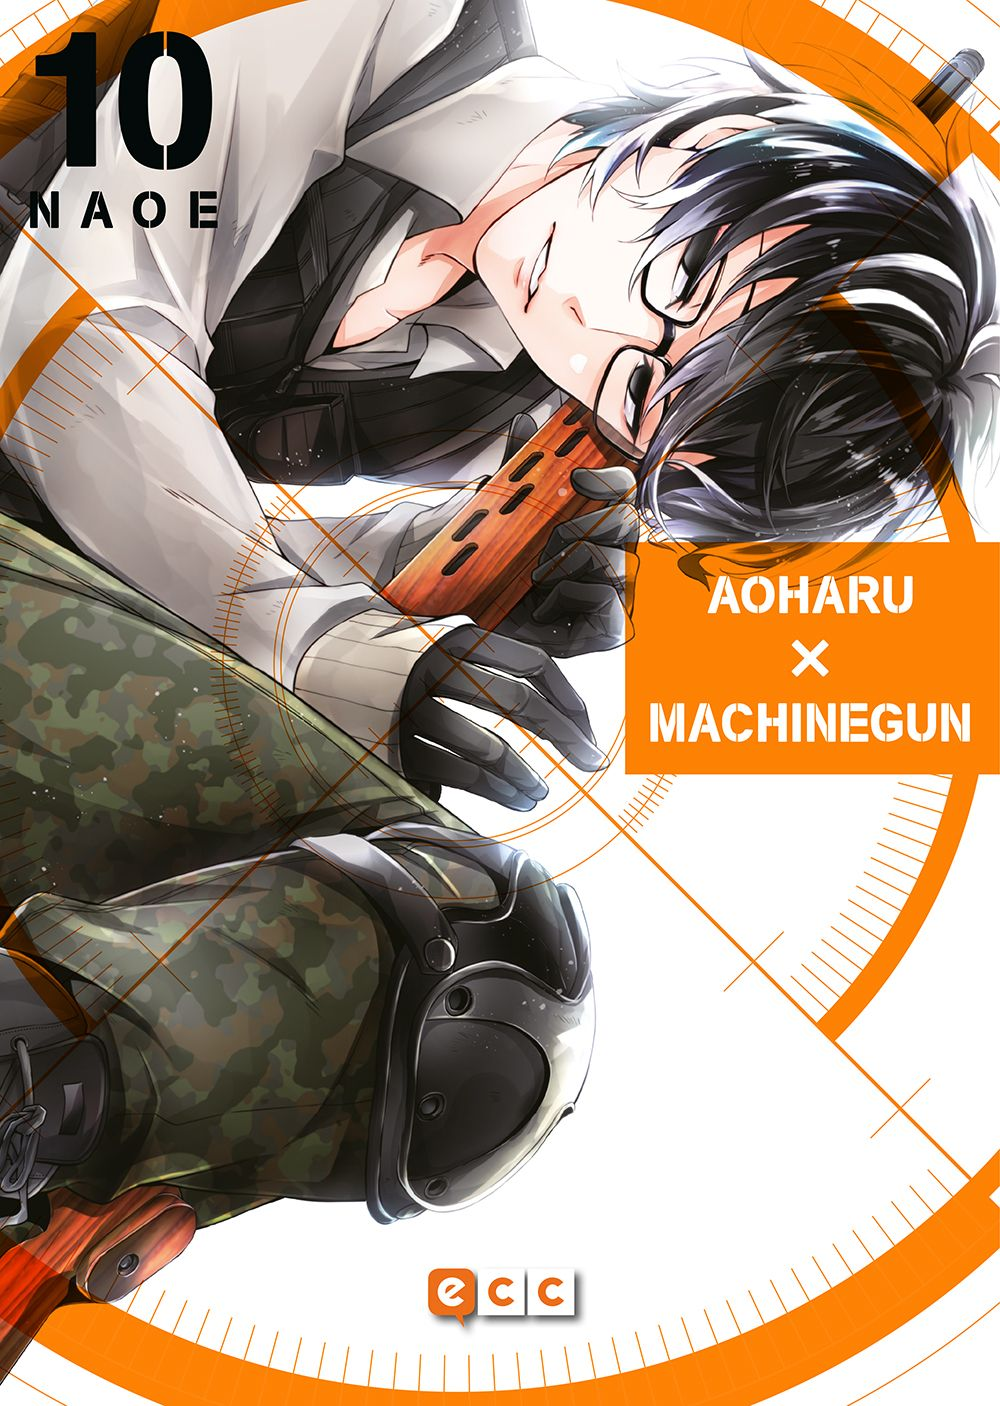 Aoharu x Machinegun 10